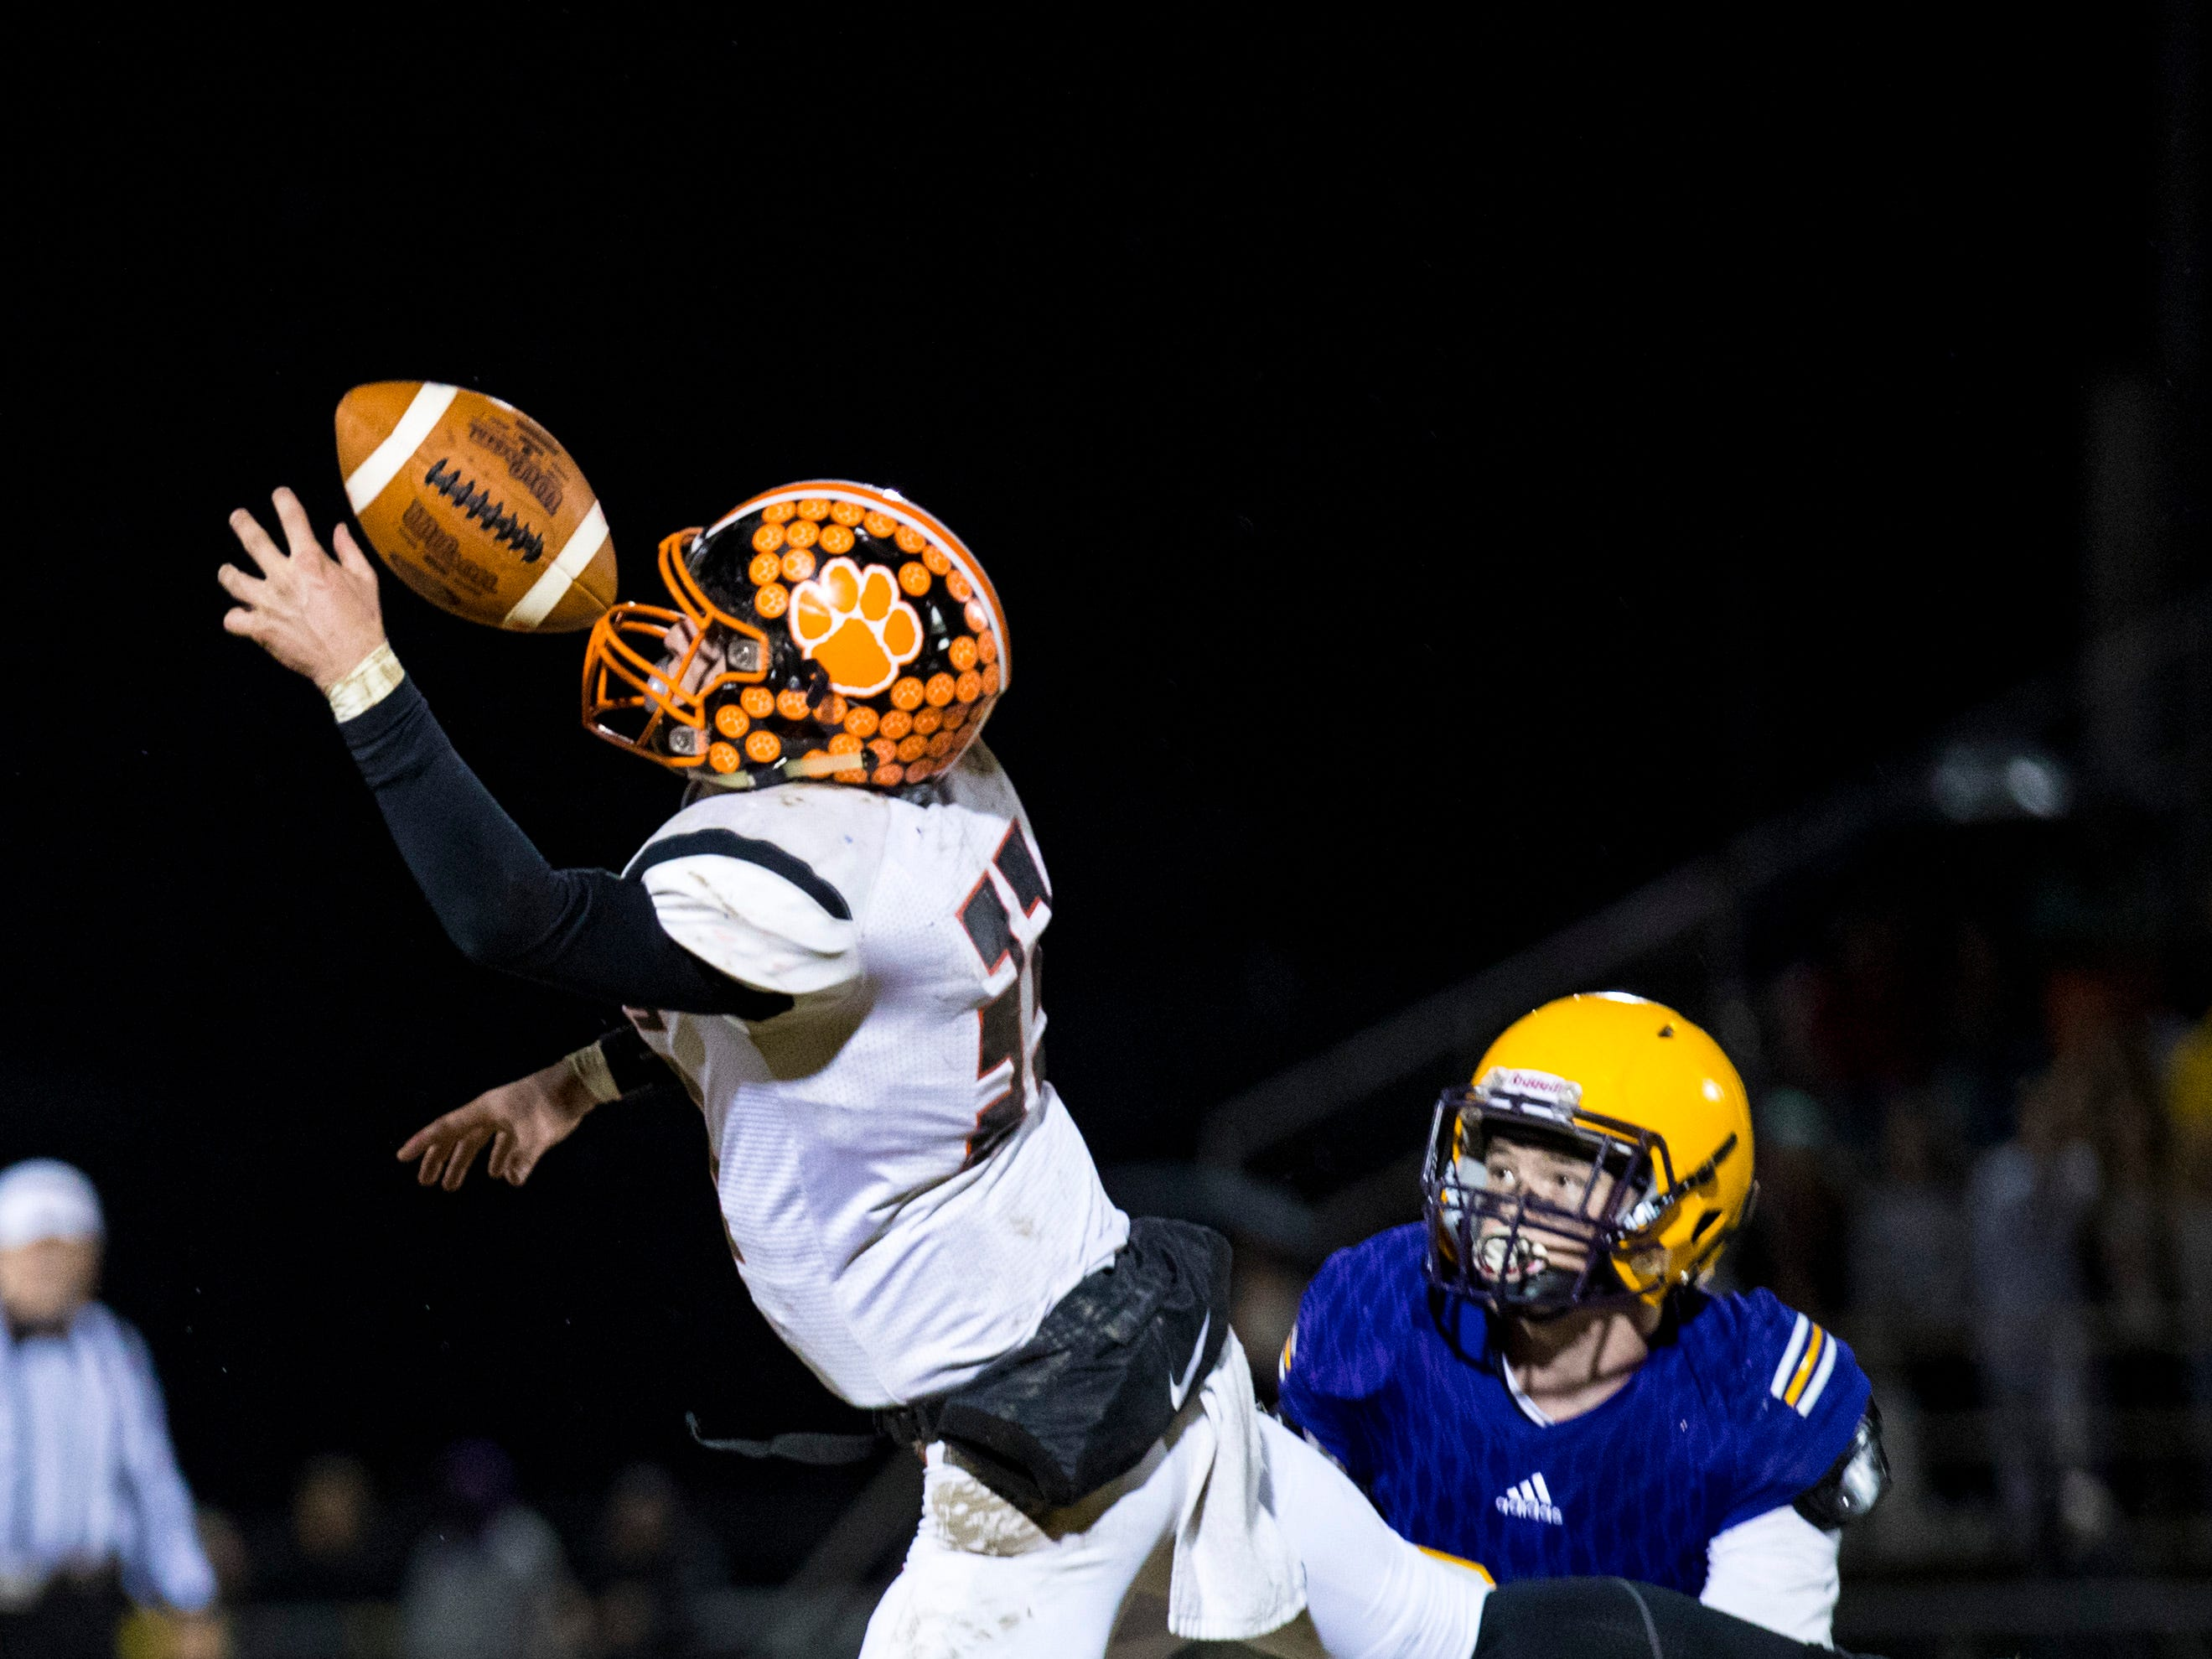 Meigs County's Caleb Hyde (33) misses a pass during Trousdale County's game against Meigs County at Jim Satterfield Stadium in Hartsville on Friday, Nov. 23, 2018.